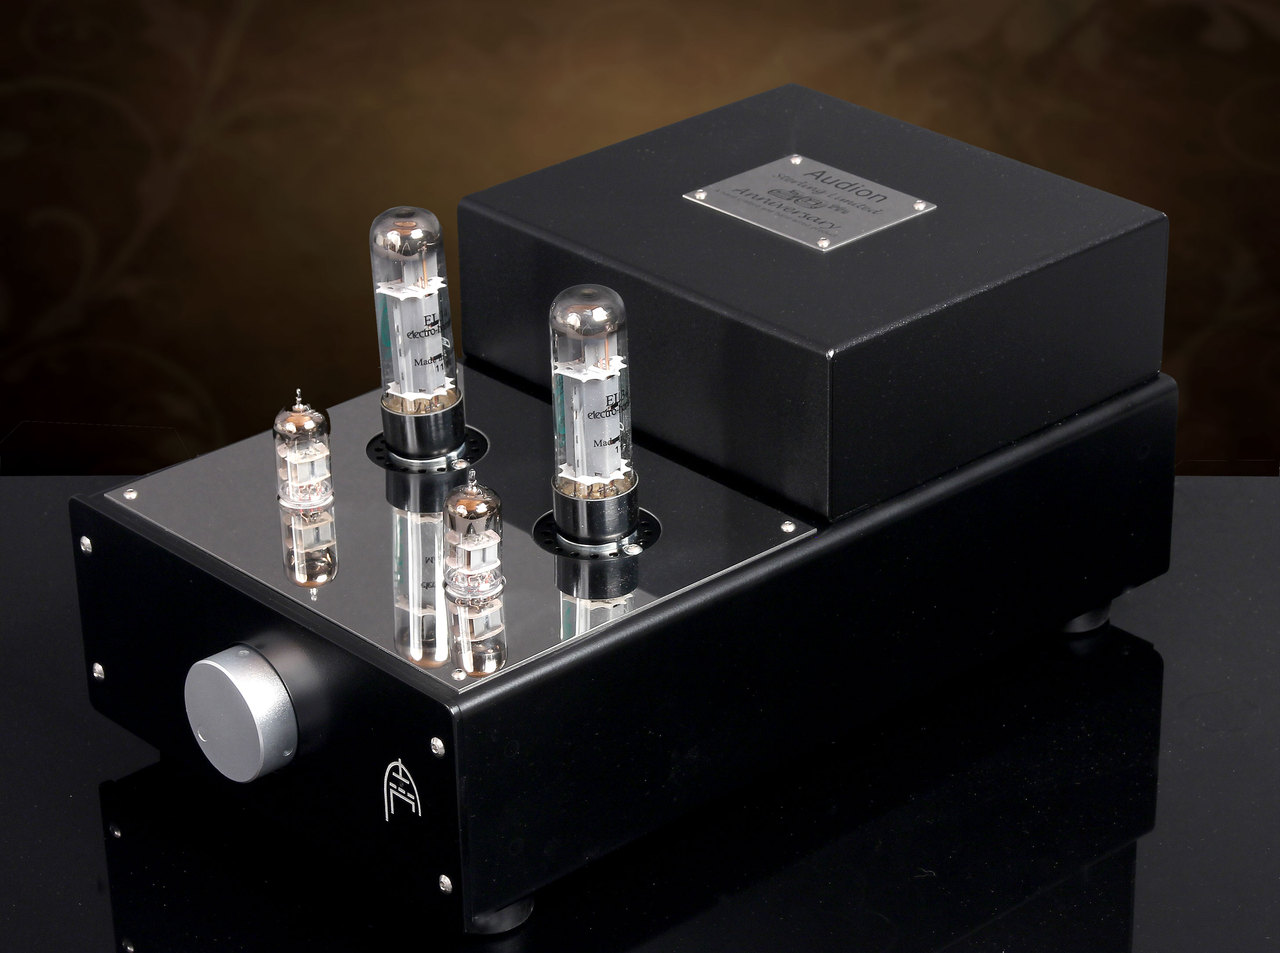 Audion Sterling Stereo EL34 Anniversary Hardwired  Stereo Amplifier. Rave Reviews. Now at True Audiophile.